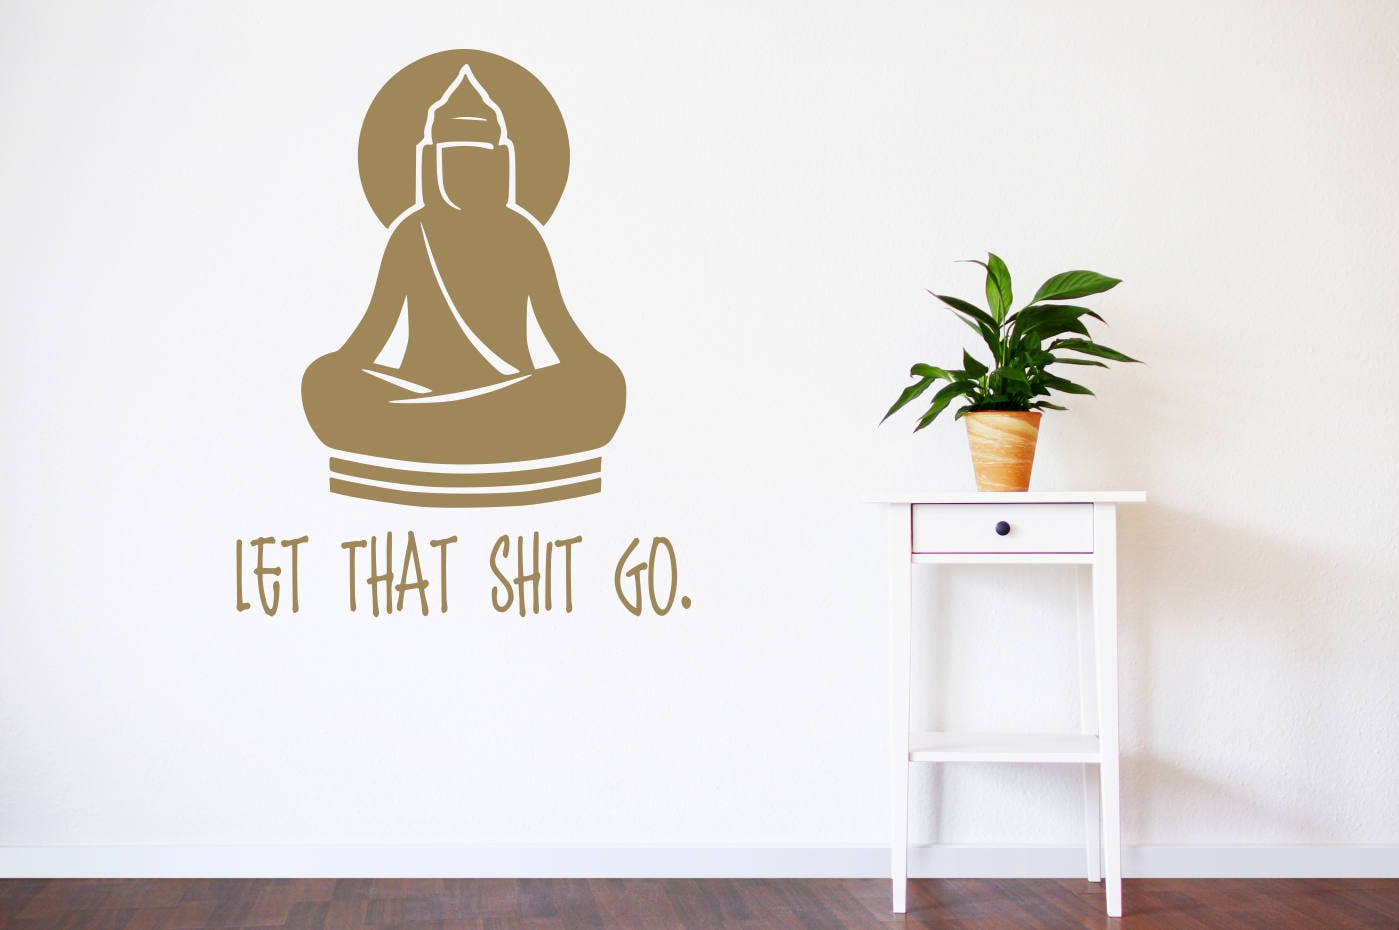 Buddha Wall Decal, Let That Shit Go, Let That Stuff Go, Meditation Decal, Buddha  Wall Art, Buddha Art, Buddah Decal, Buddah Wall Art